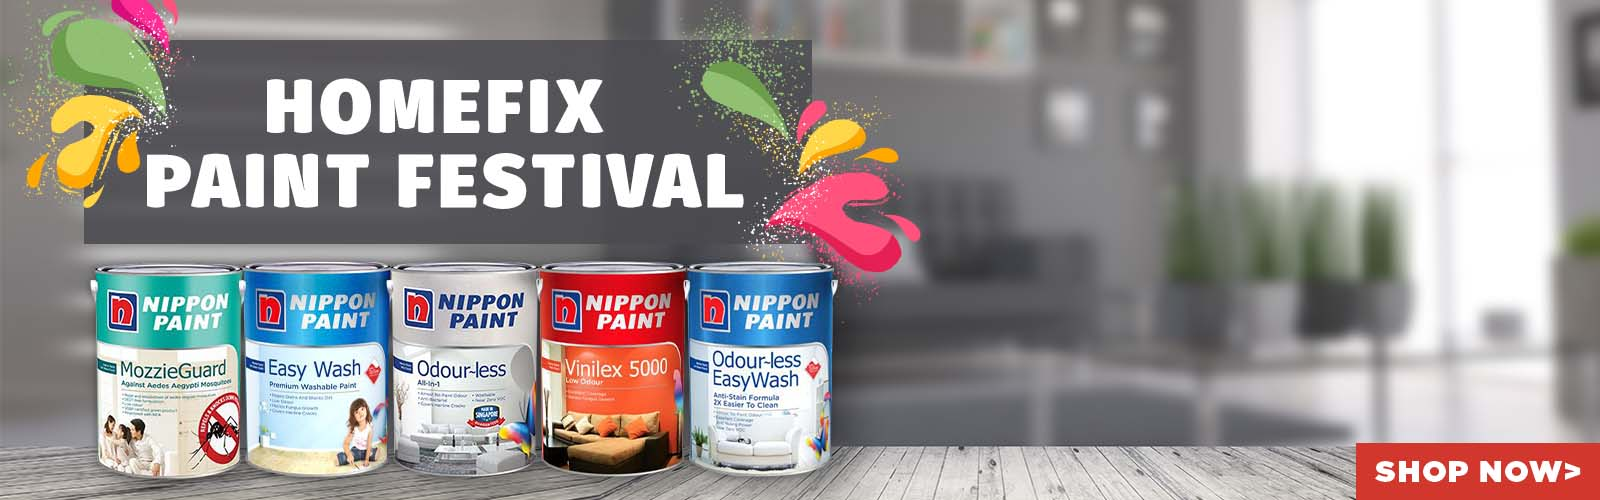 Start shopping now for Nippon Paints, discounts, free gifts, fast and free delivery